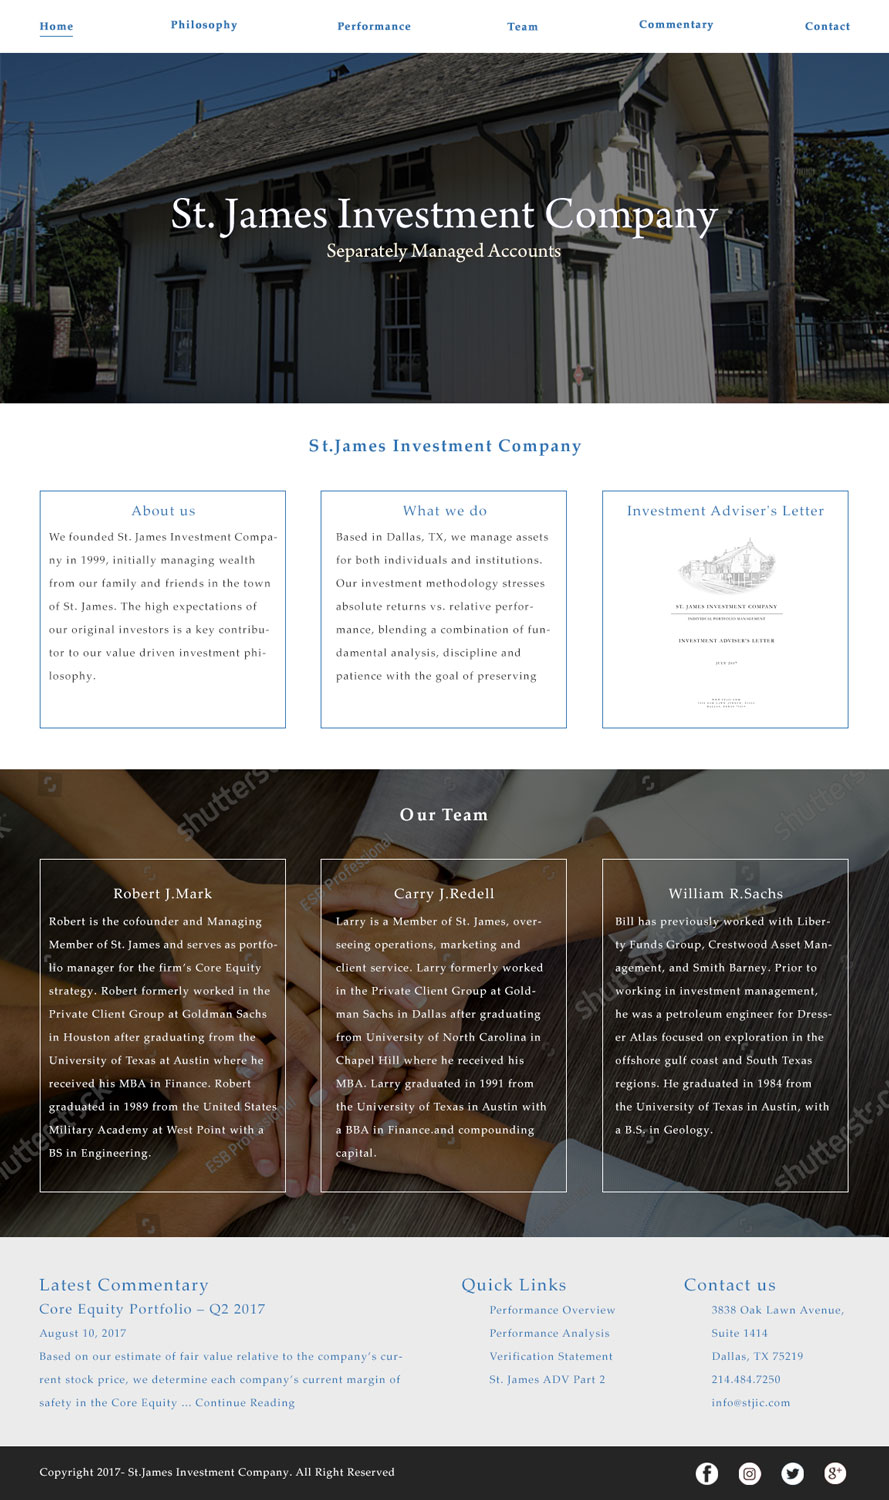 Serious Professional Financial Web Design For St James Investment Company By Gates M Design 15954934